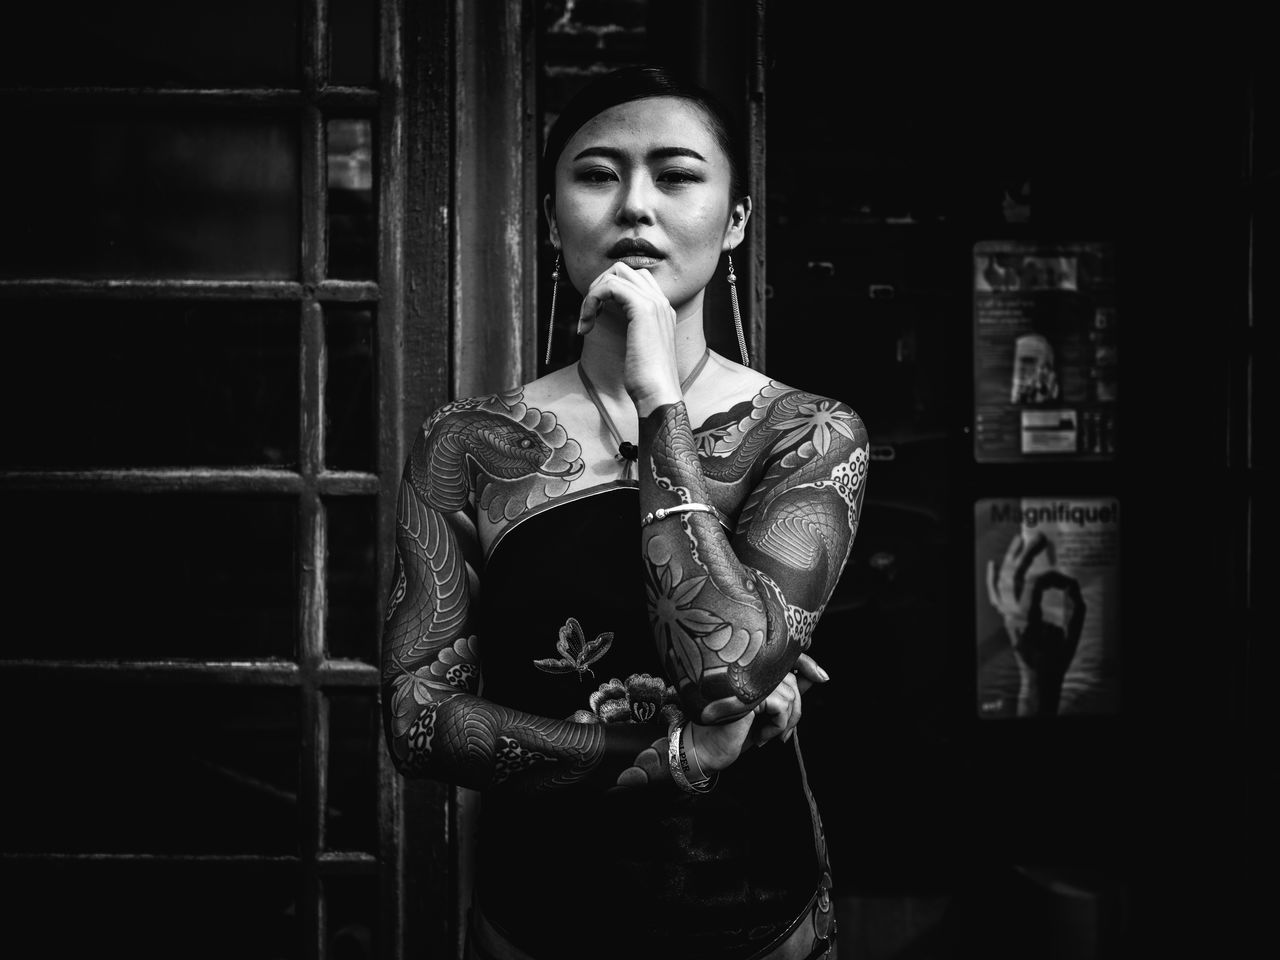 Girl with the Dragon Tattoo rawstreets streetlife black and white photography street portraiture stranger cıty maxgor London olympus pen-f lifestyles 35mmstreet photography maxgor.com City candid London lifestyle prime lens portrait LTC london tattoo tattoo women